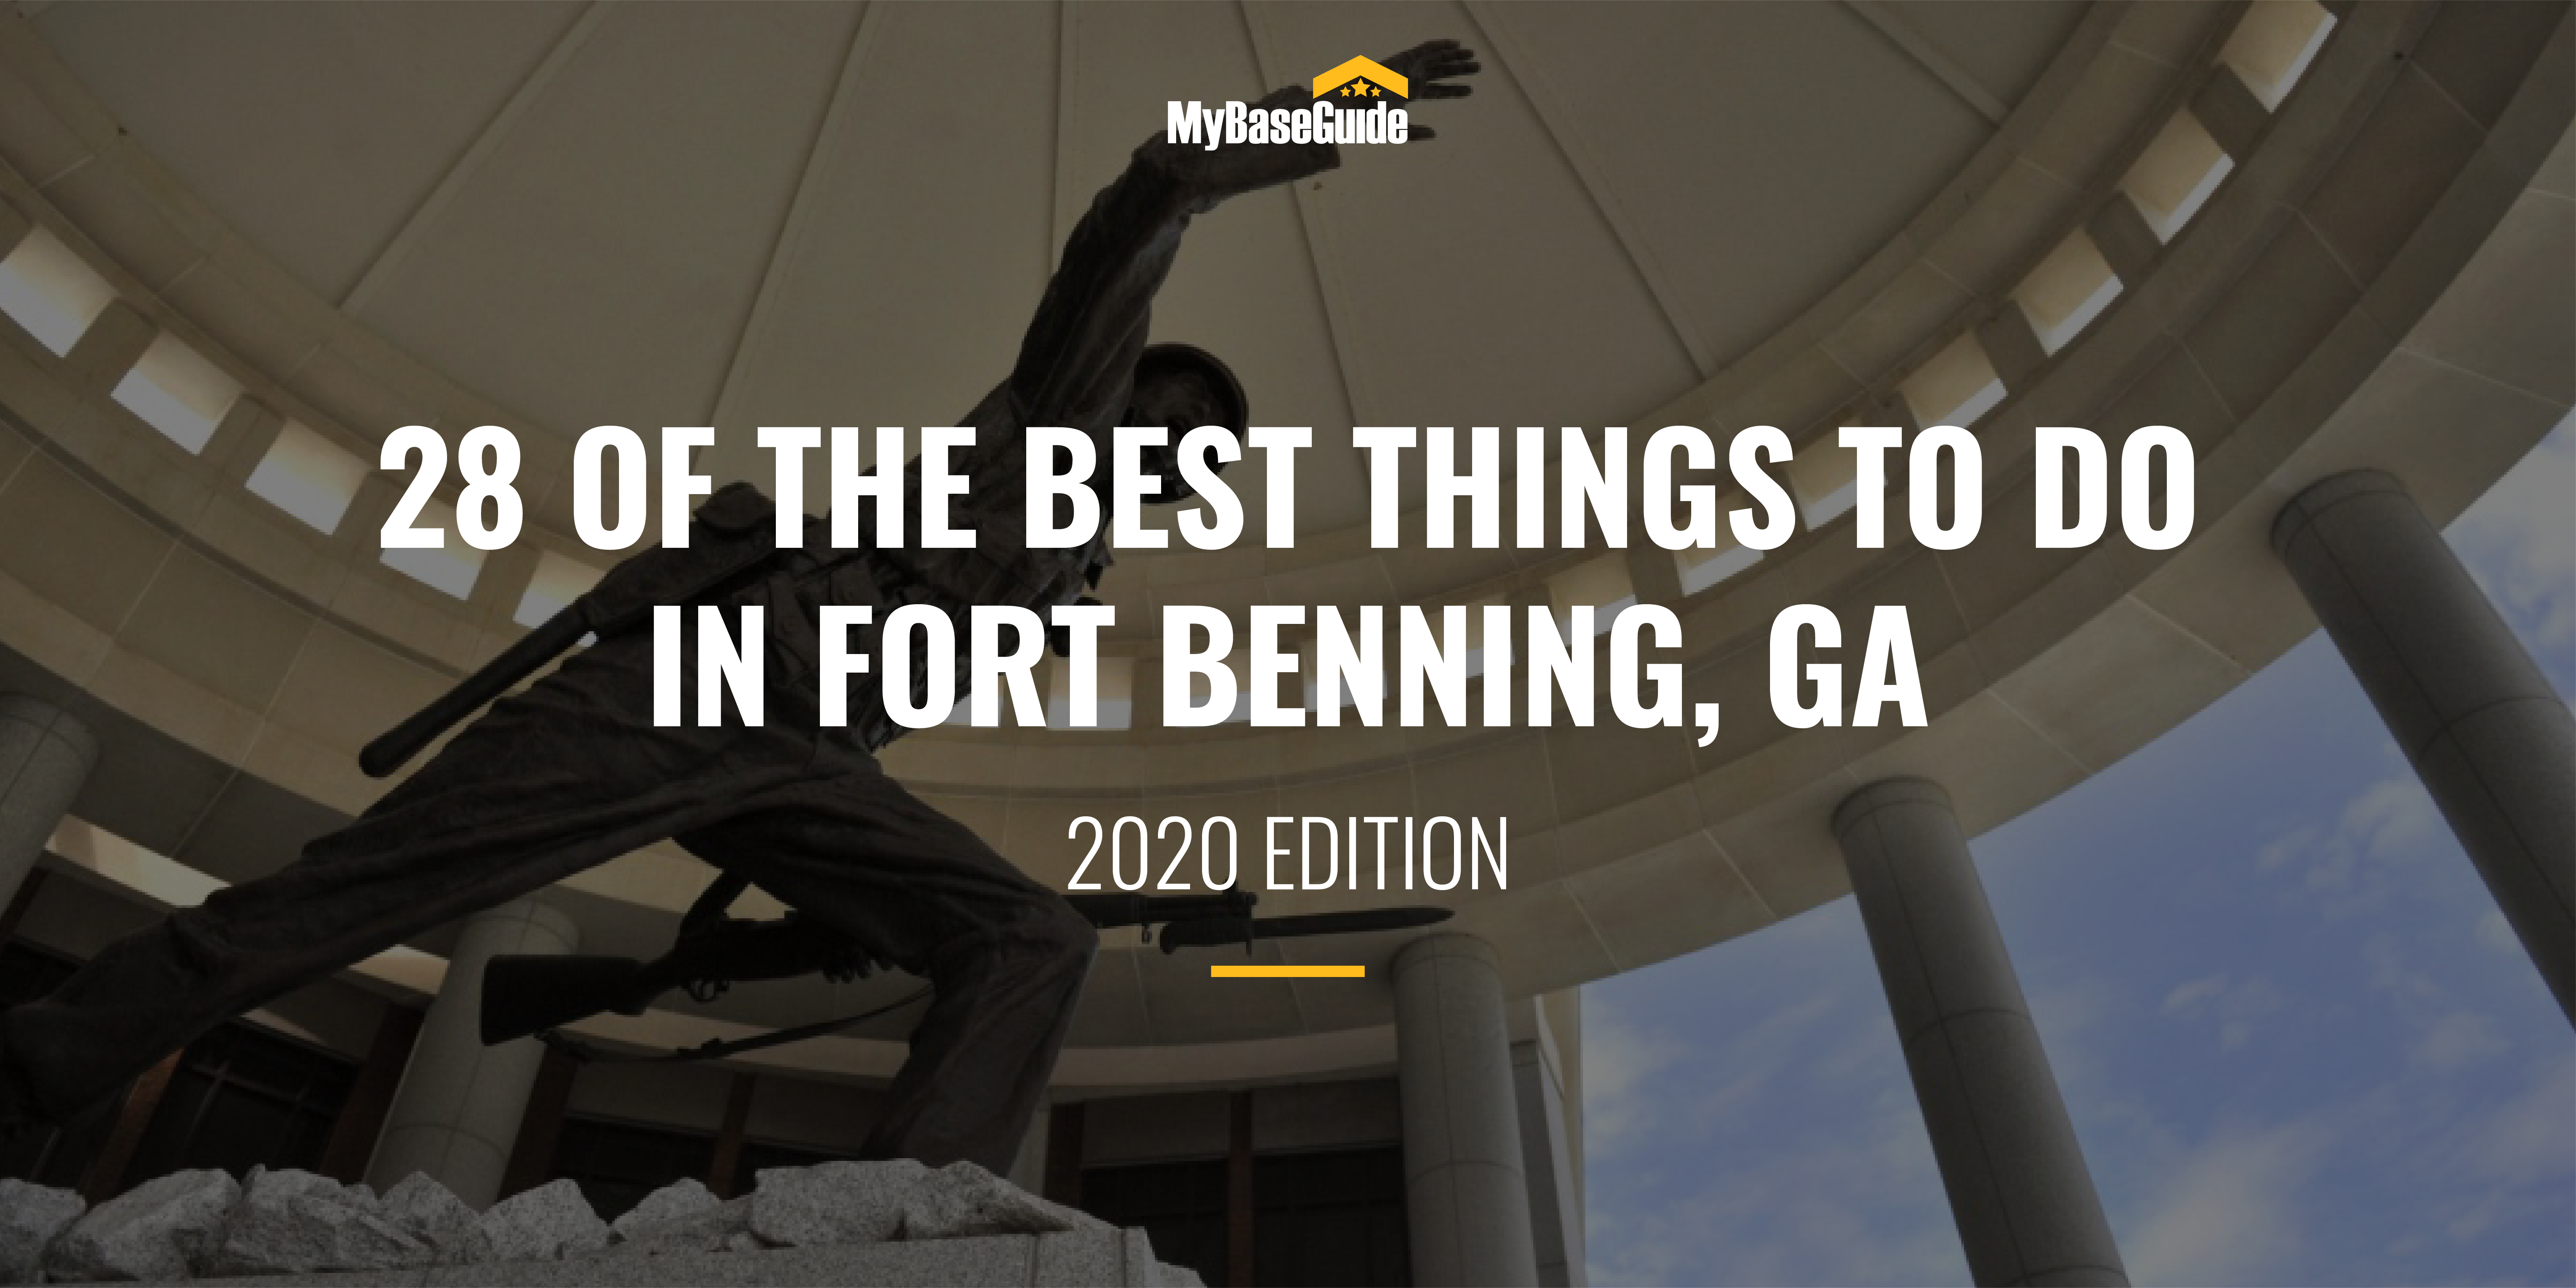 Things to Do in Fort Benning GA